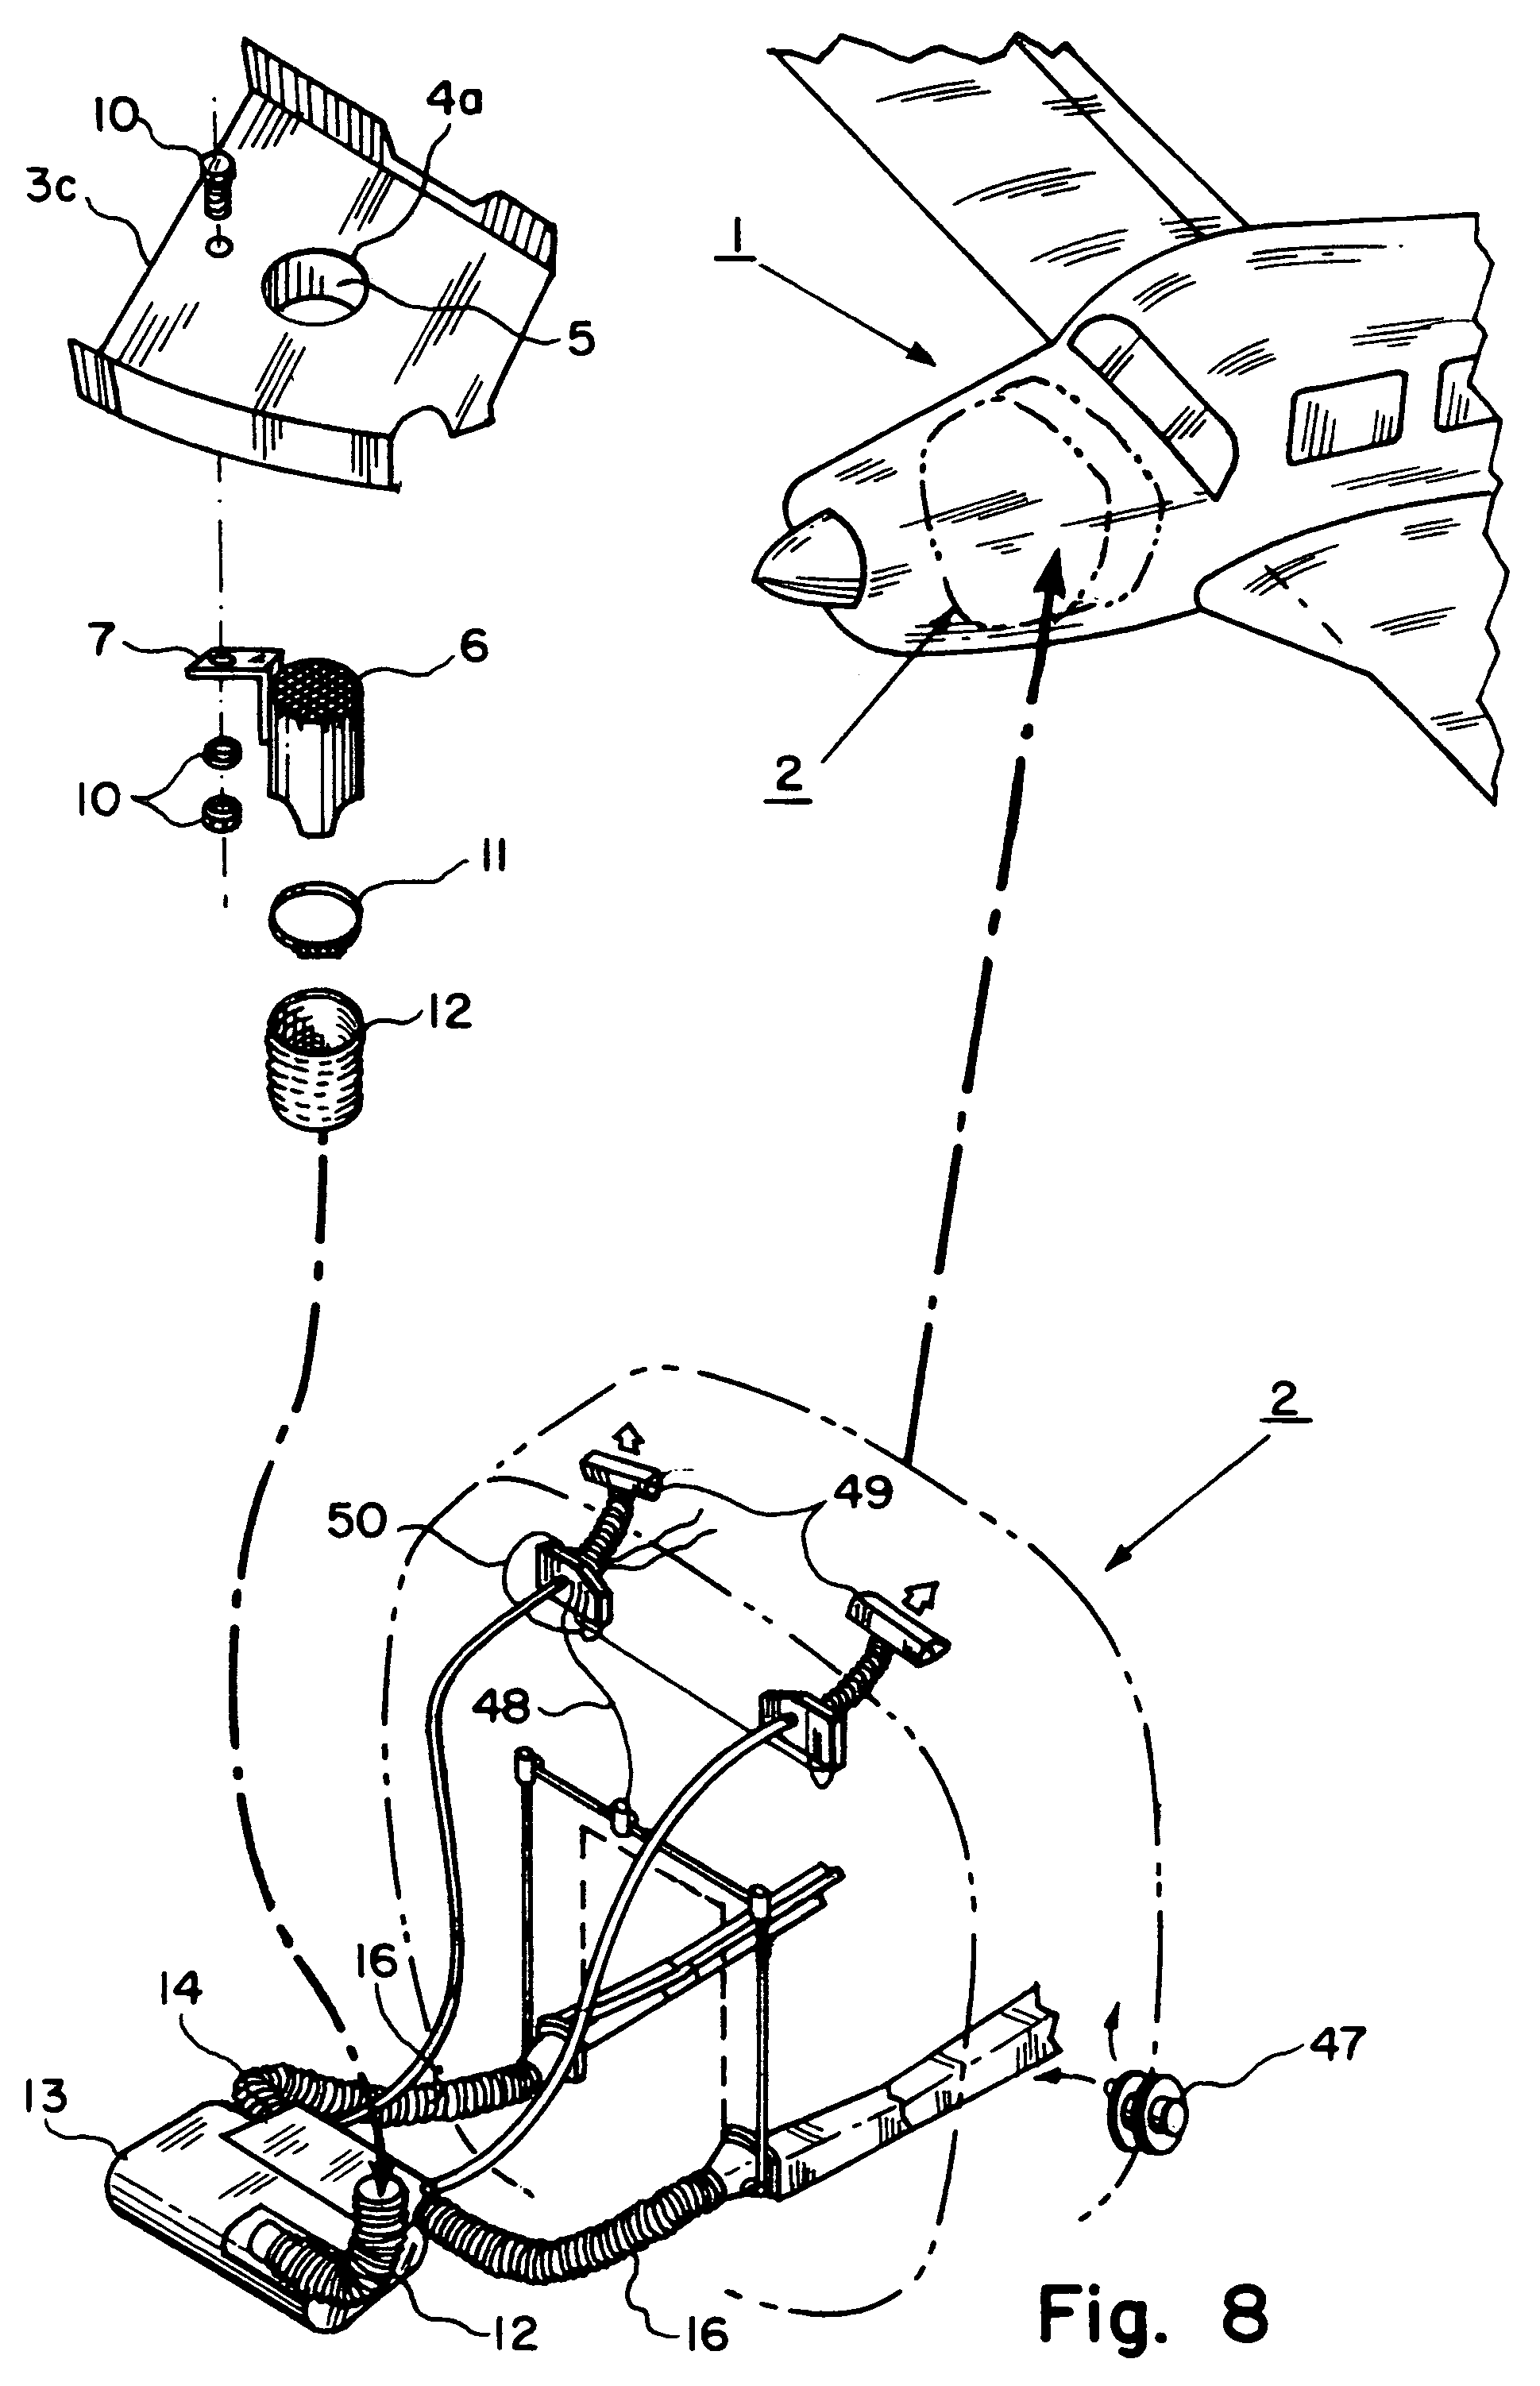 US07017828 20060328 D00006?resize\\d665%2C1030 cessna 172 engine wiring diagram bell 206 wiring diagram, cessna cessna 172 alternator wiring diagram at cos-gaming.co